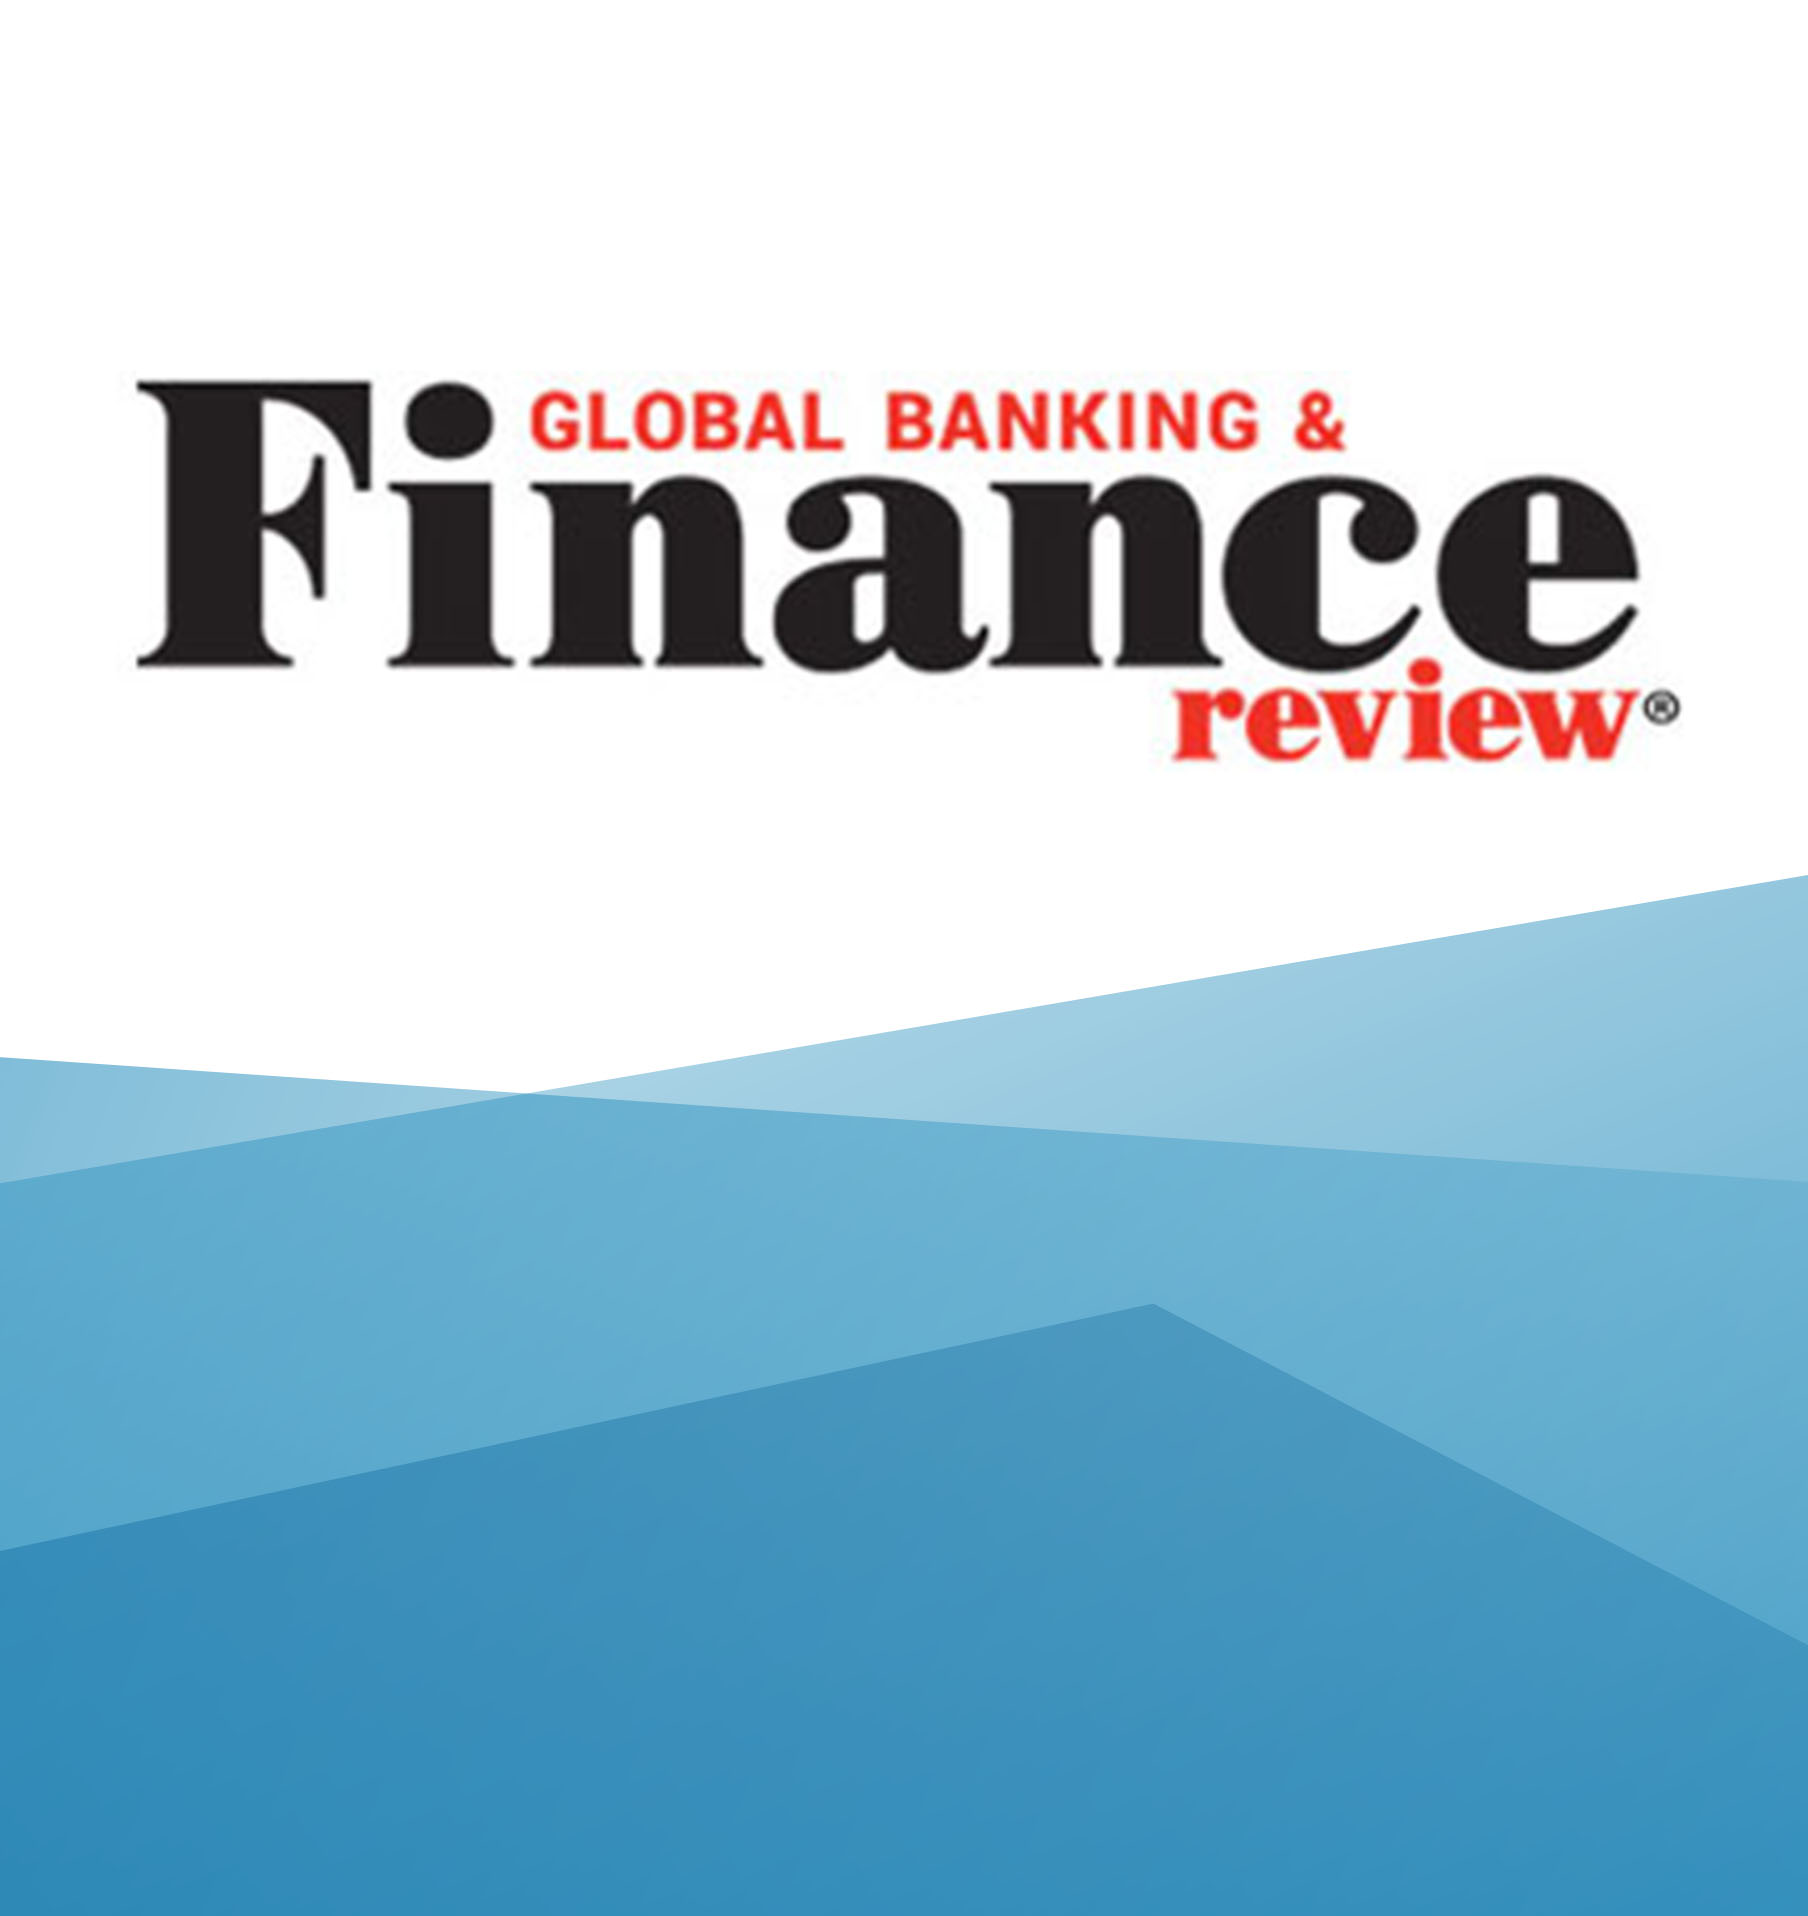 Global Banking Finance Review features Serviceware Financial.